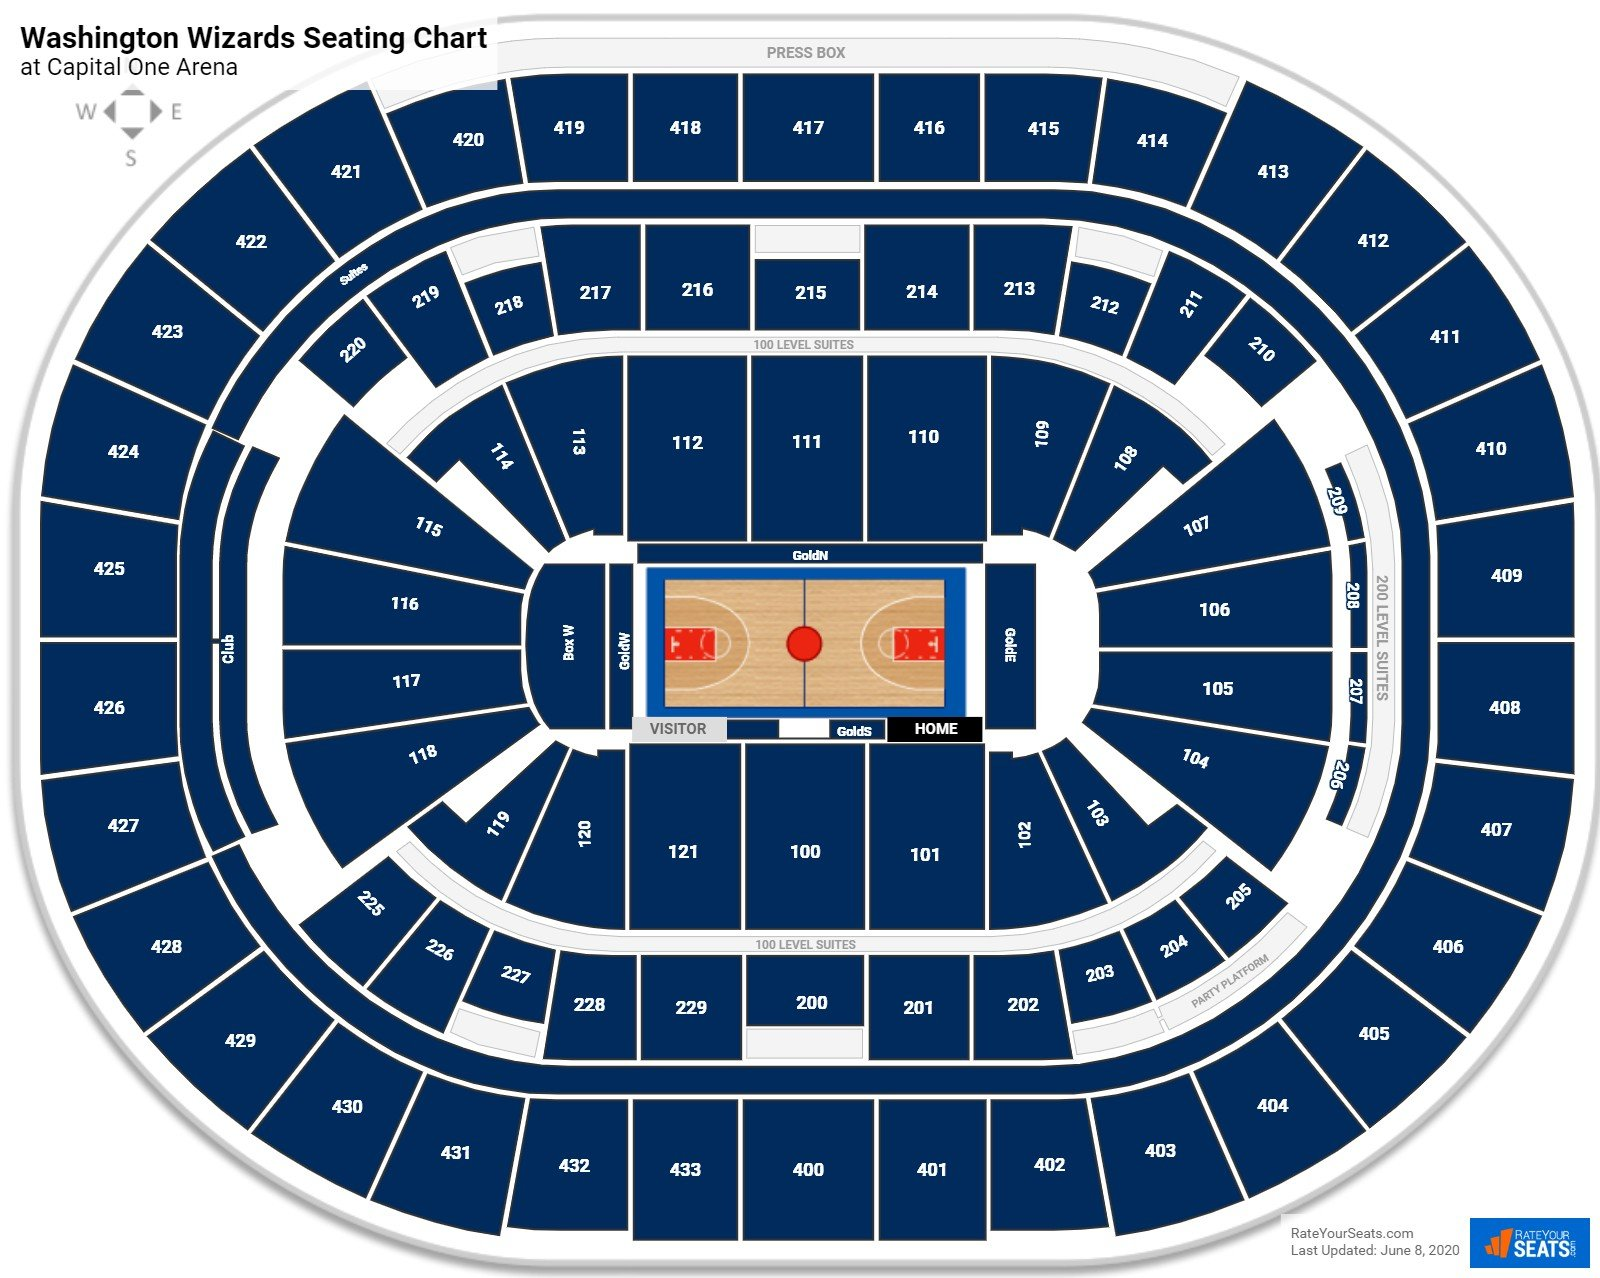 Wizards Georgetown Seating Charts At Capital One Arena Rateyourseats Com